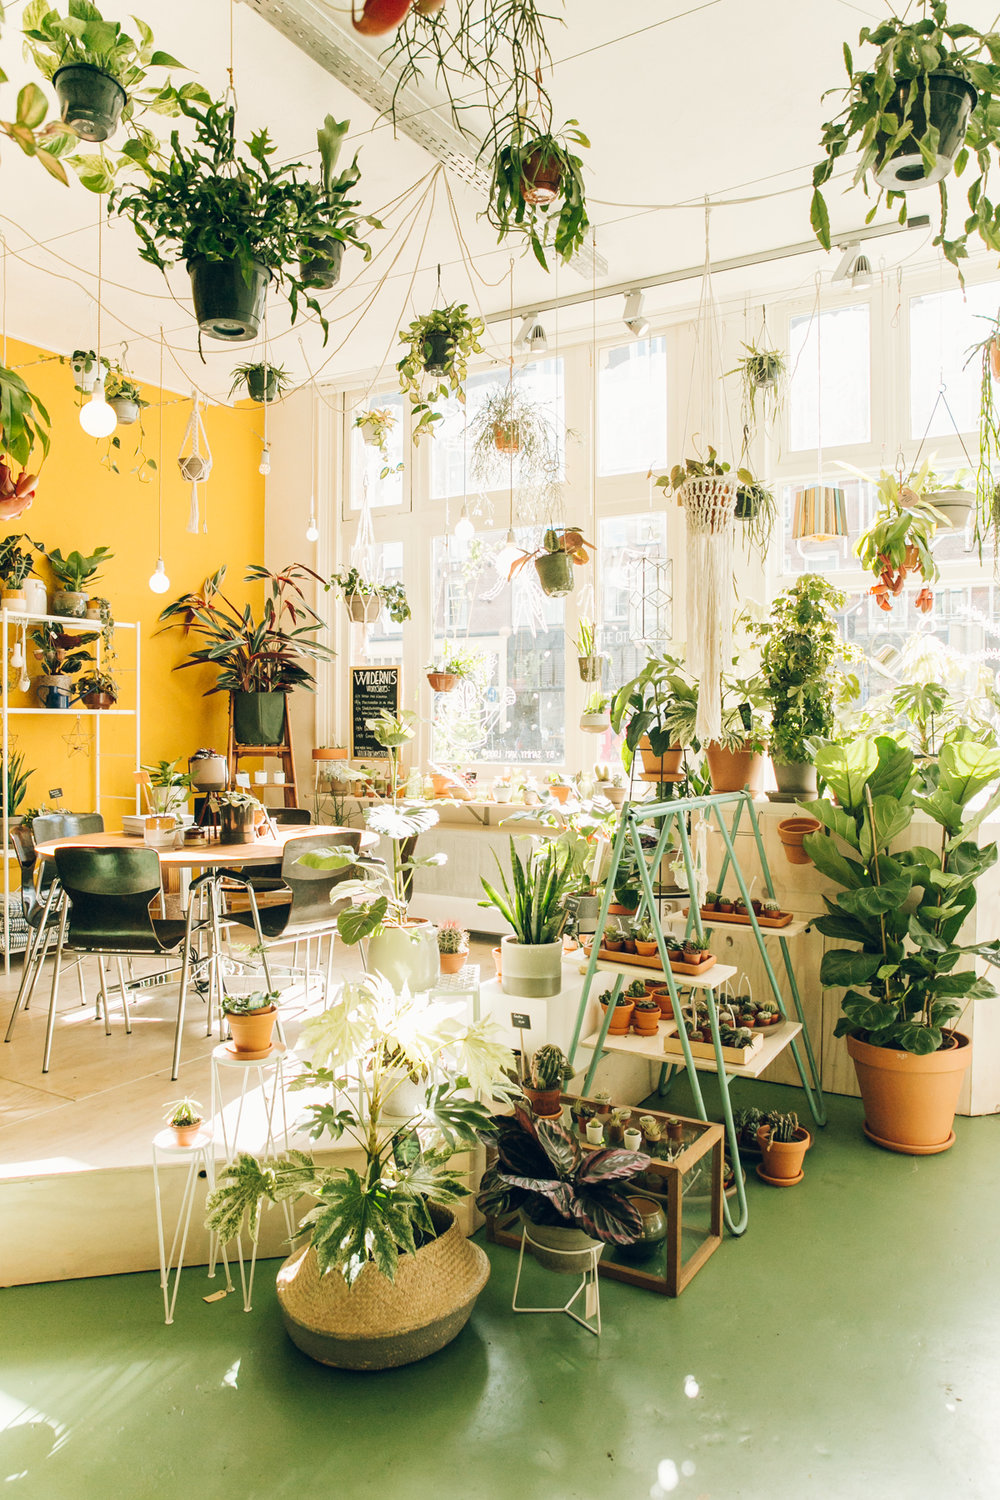 Inside Wildernis - a plant shop in Amsterdam.